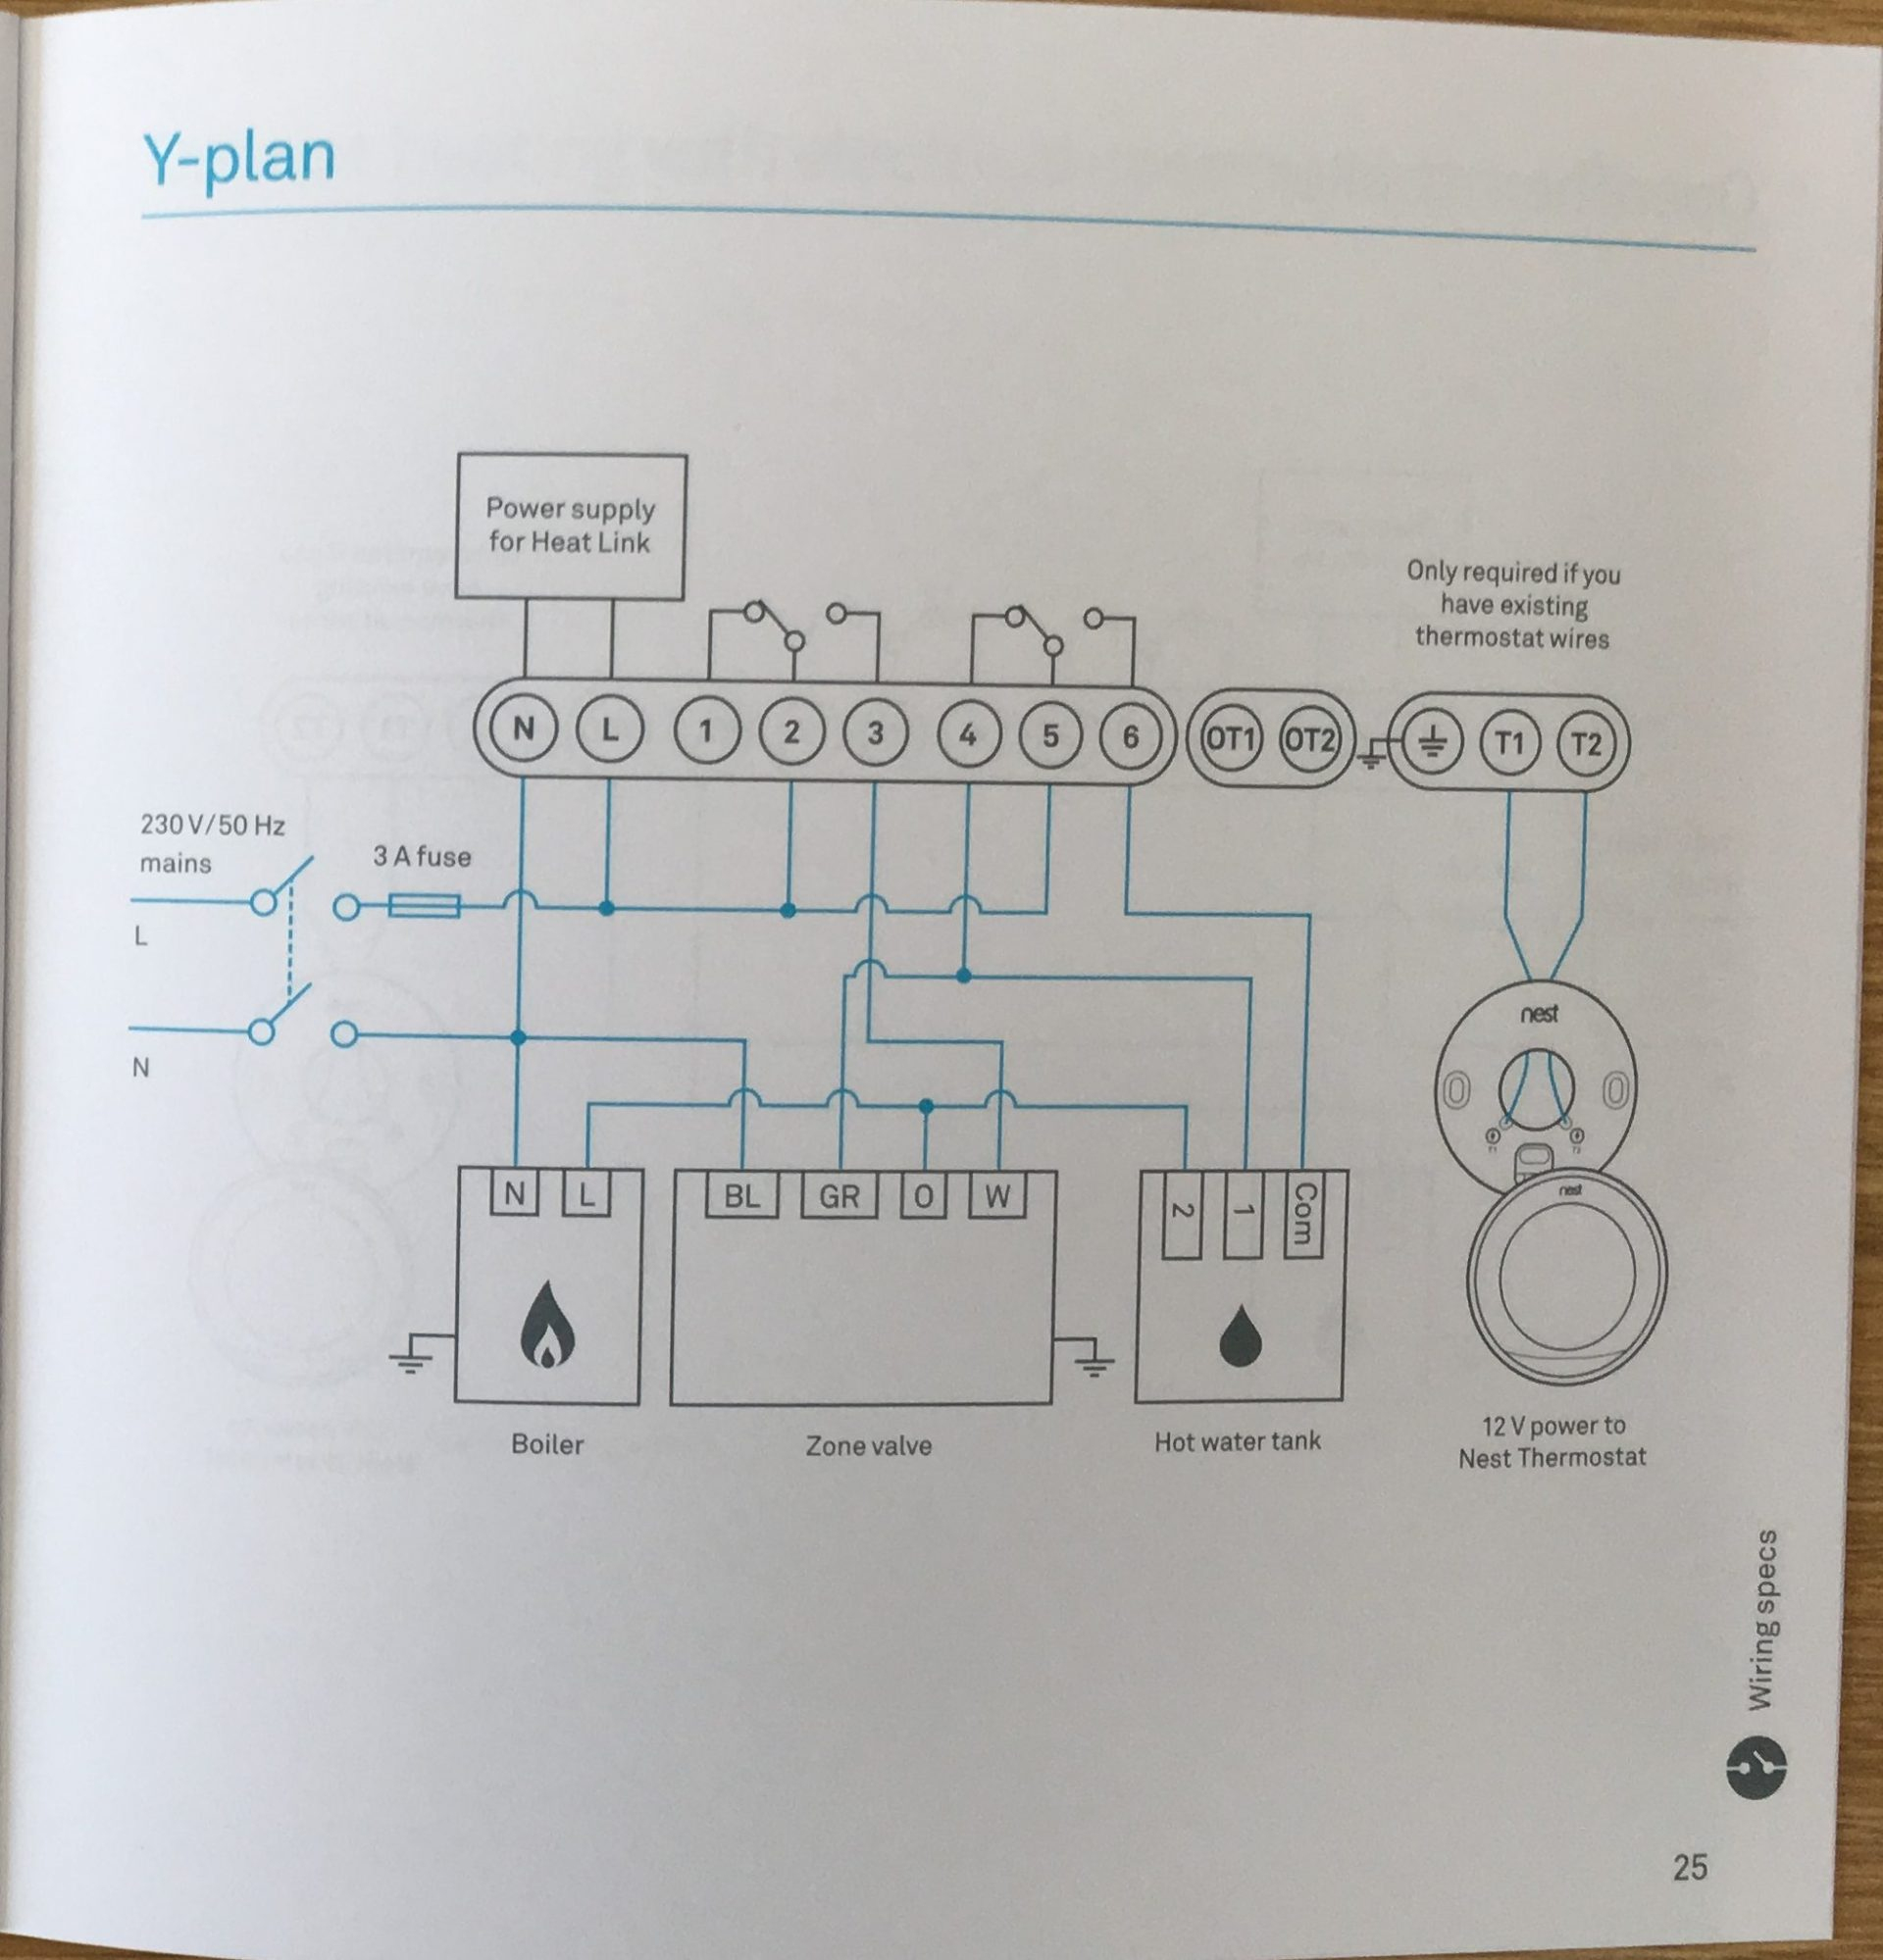 How To Install The Nest Learning Thermostat (3Rd Gen) In A Y-Plan - Nest Thermostat Gen 3 Wiring Diagram